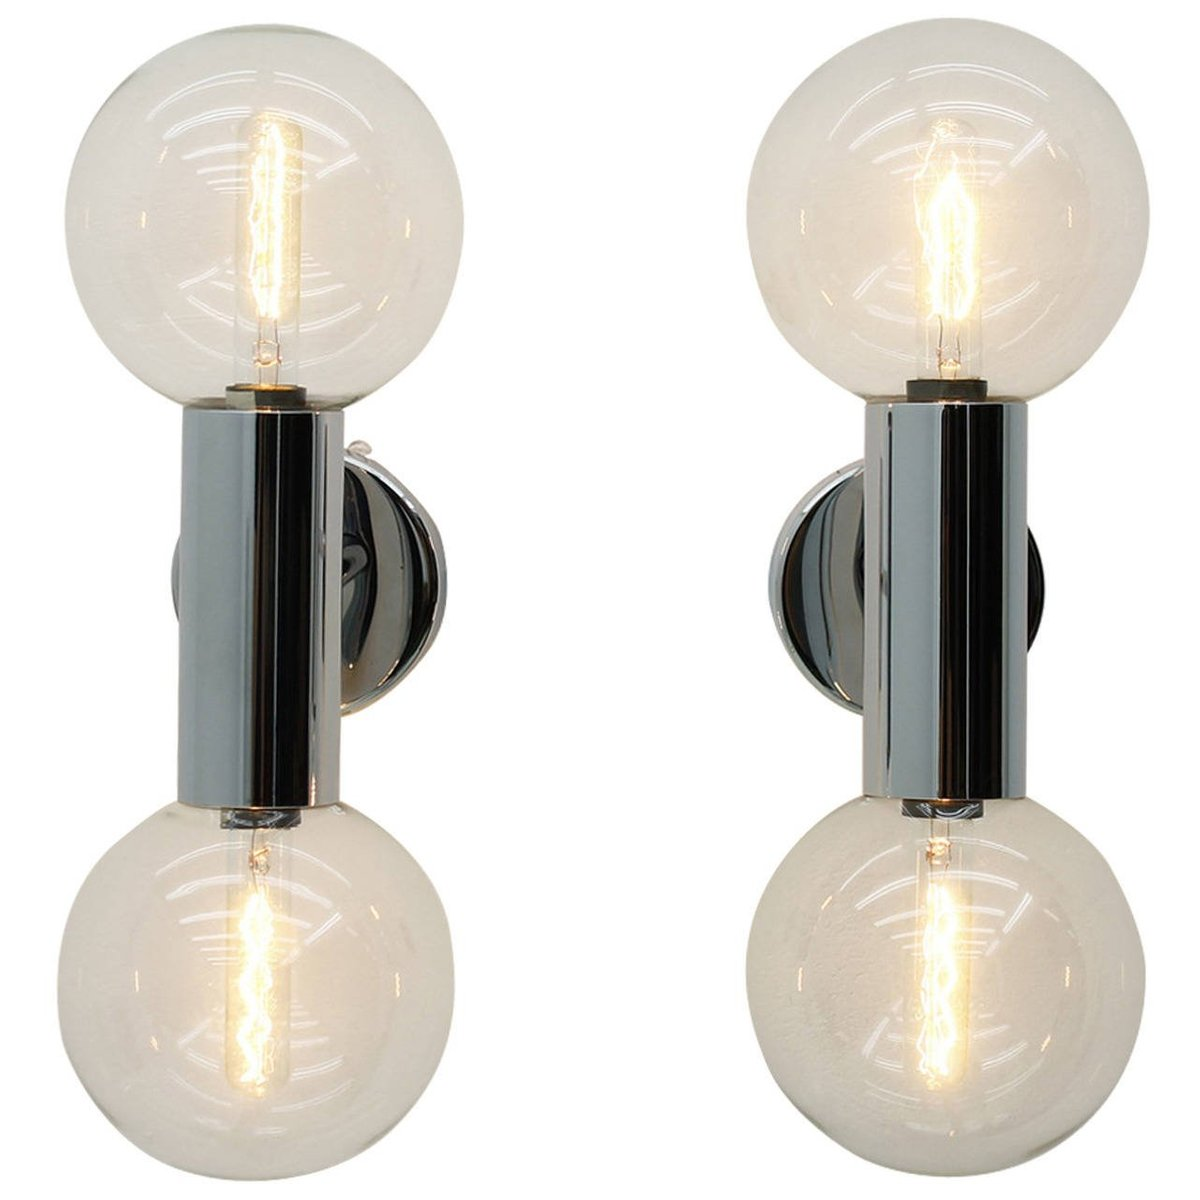 Wall Sconces Set Of 2 : Wall Sconces by Motoko Ishii for Staff, Set of 2 for sale at Pamono